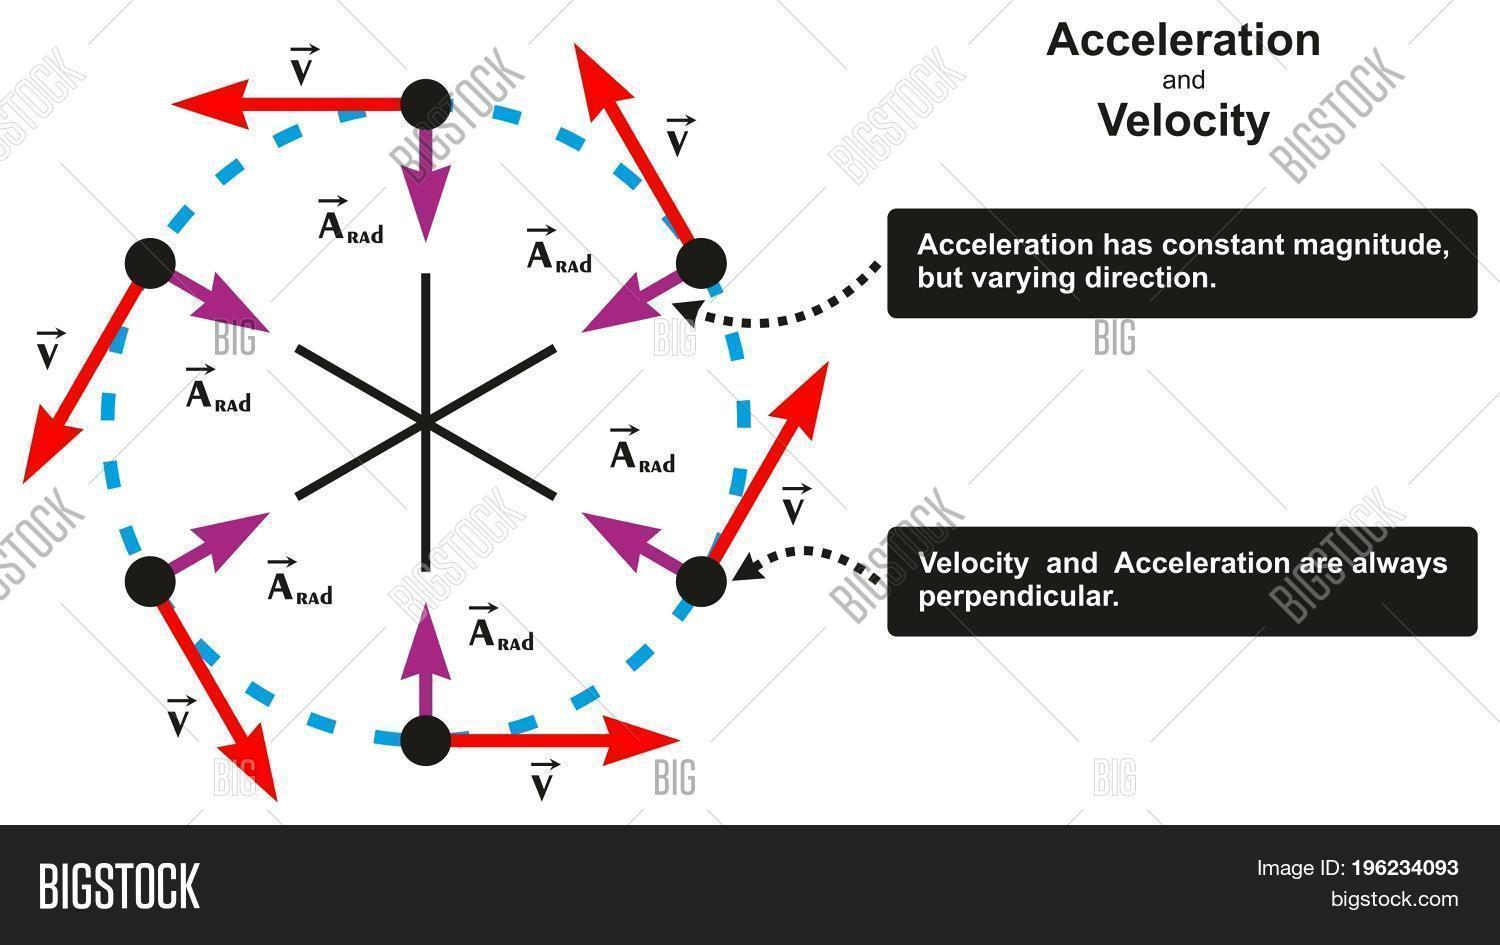 hight resolution of acceleration and velocity relation infographic diagram including object moving in circle with varying direction and both